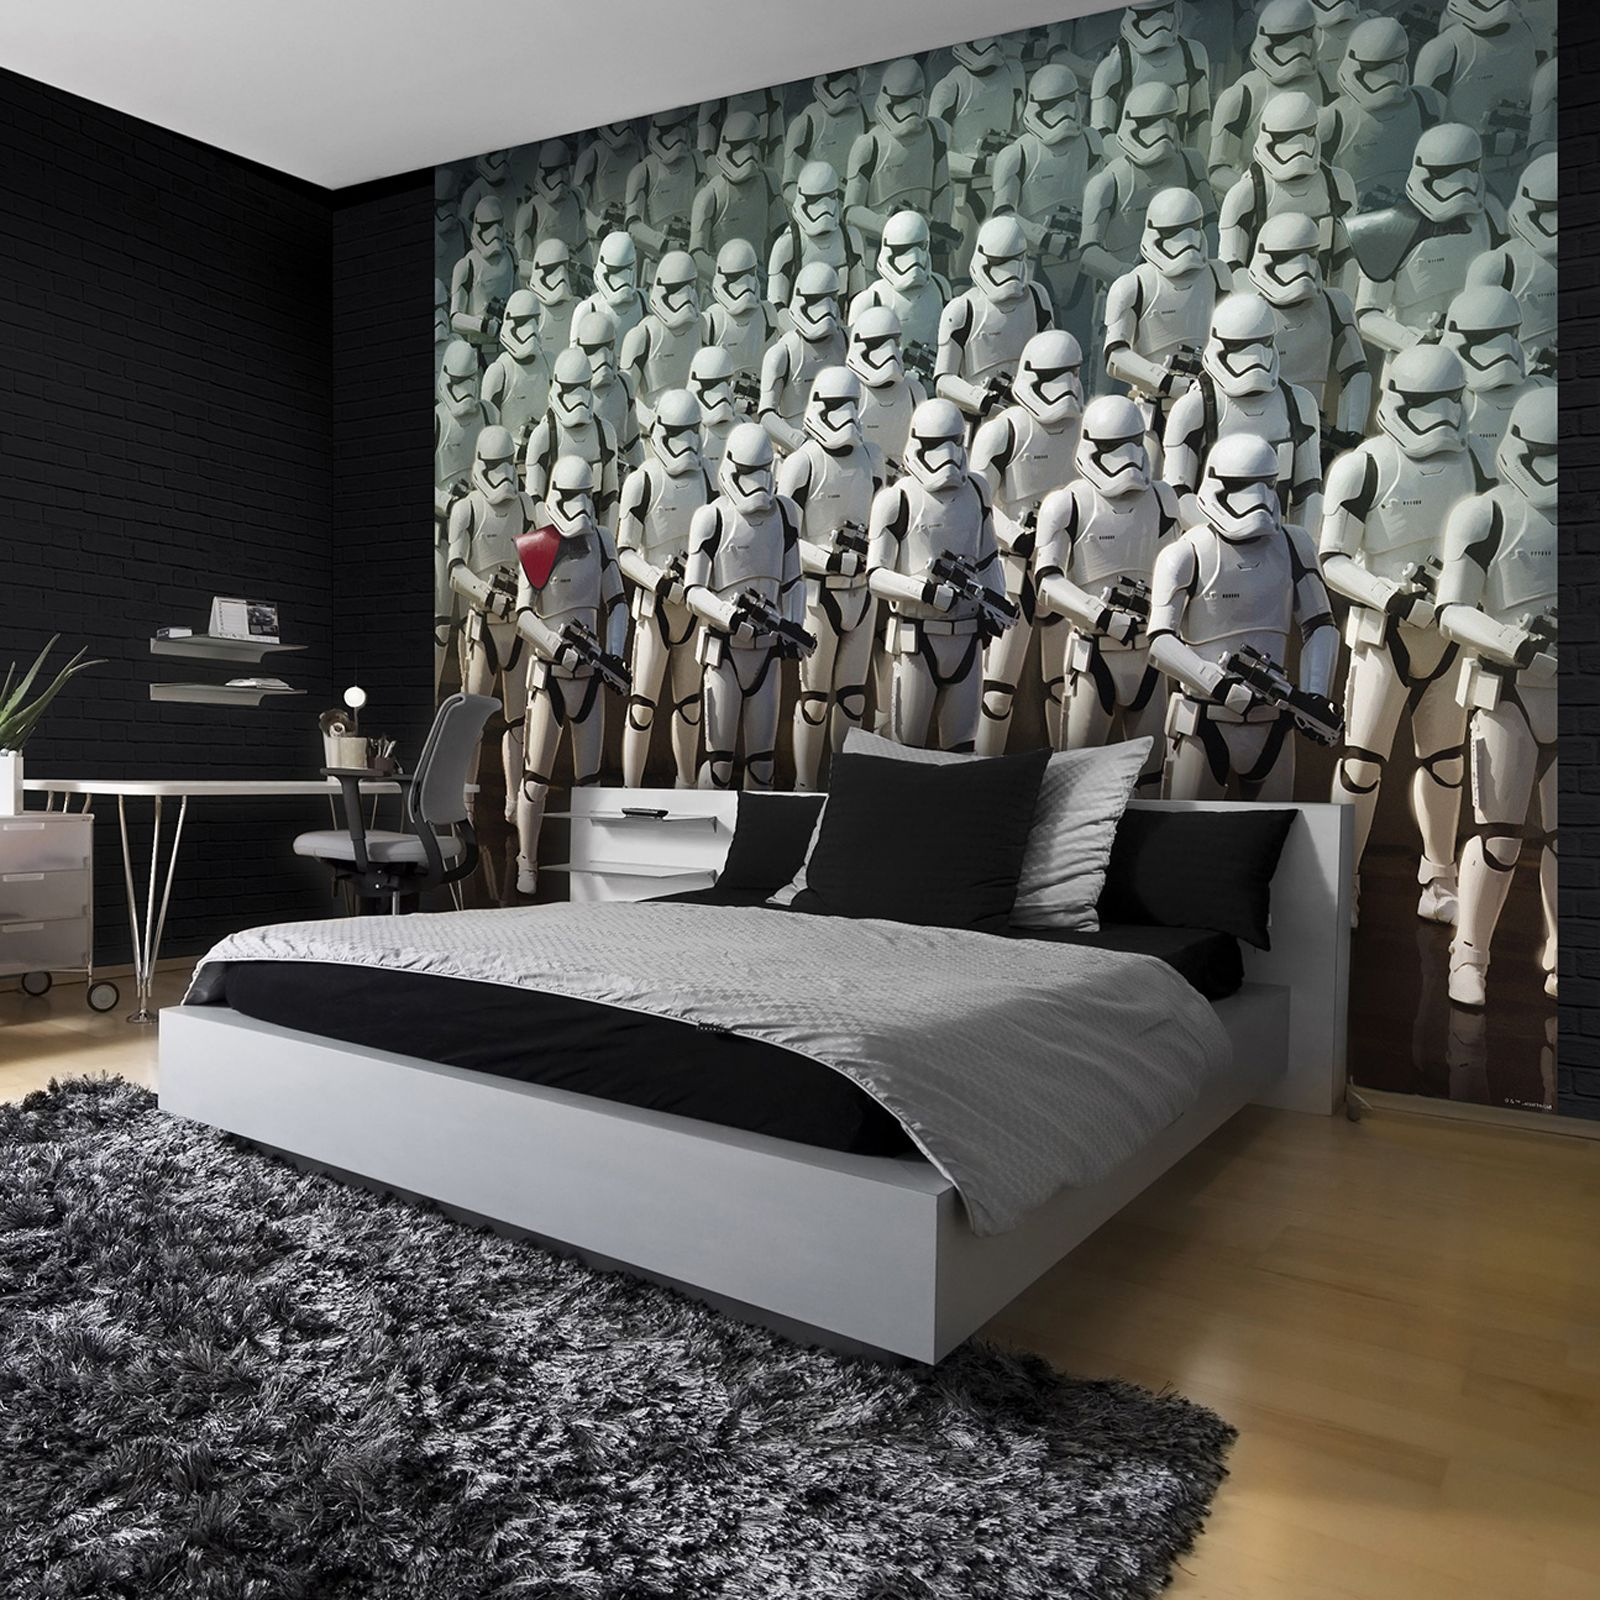 Star Wars Wall Murals Characters Various Designs Styles